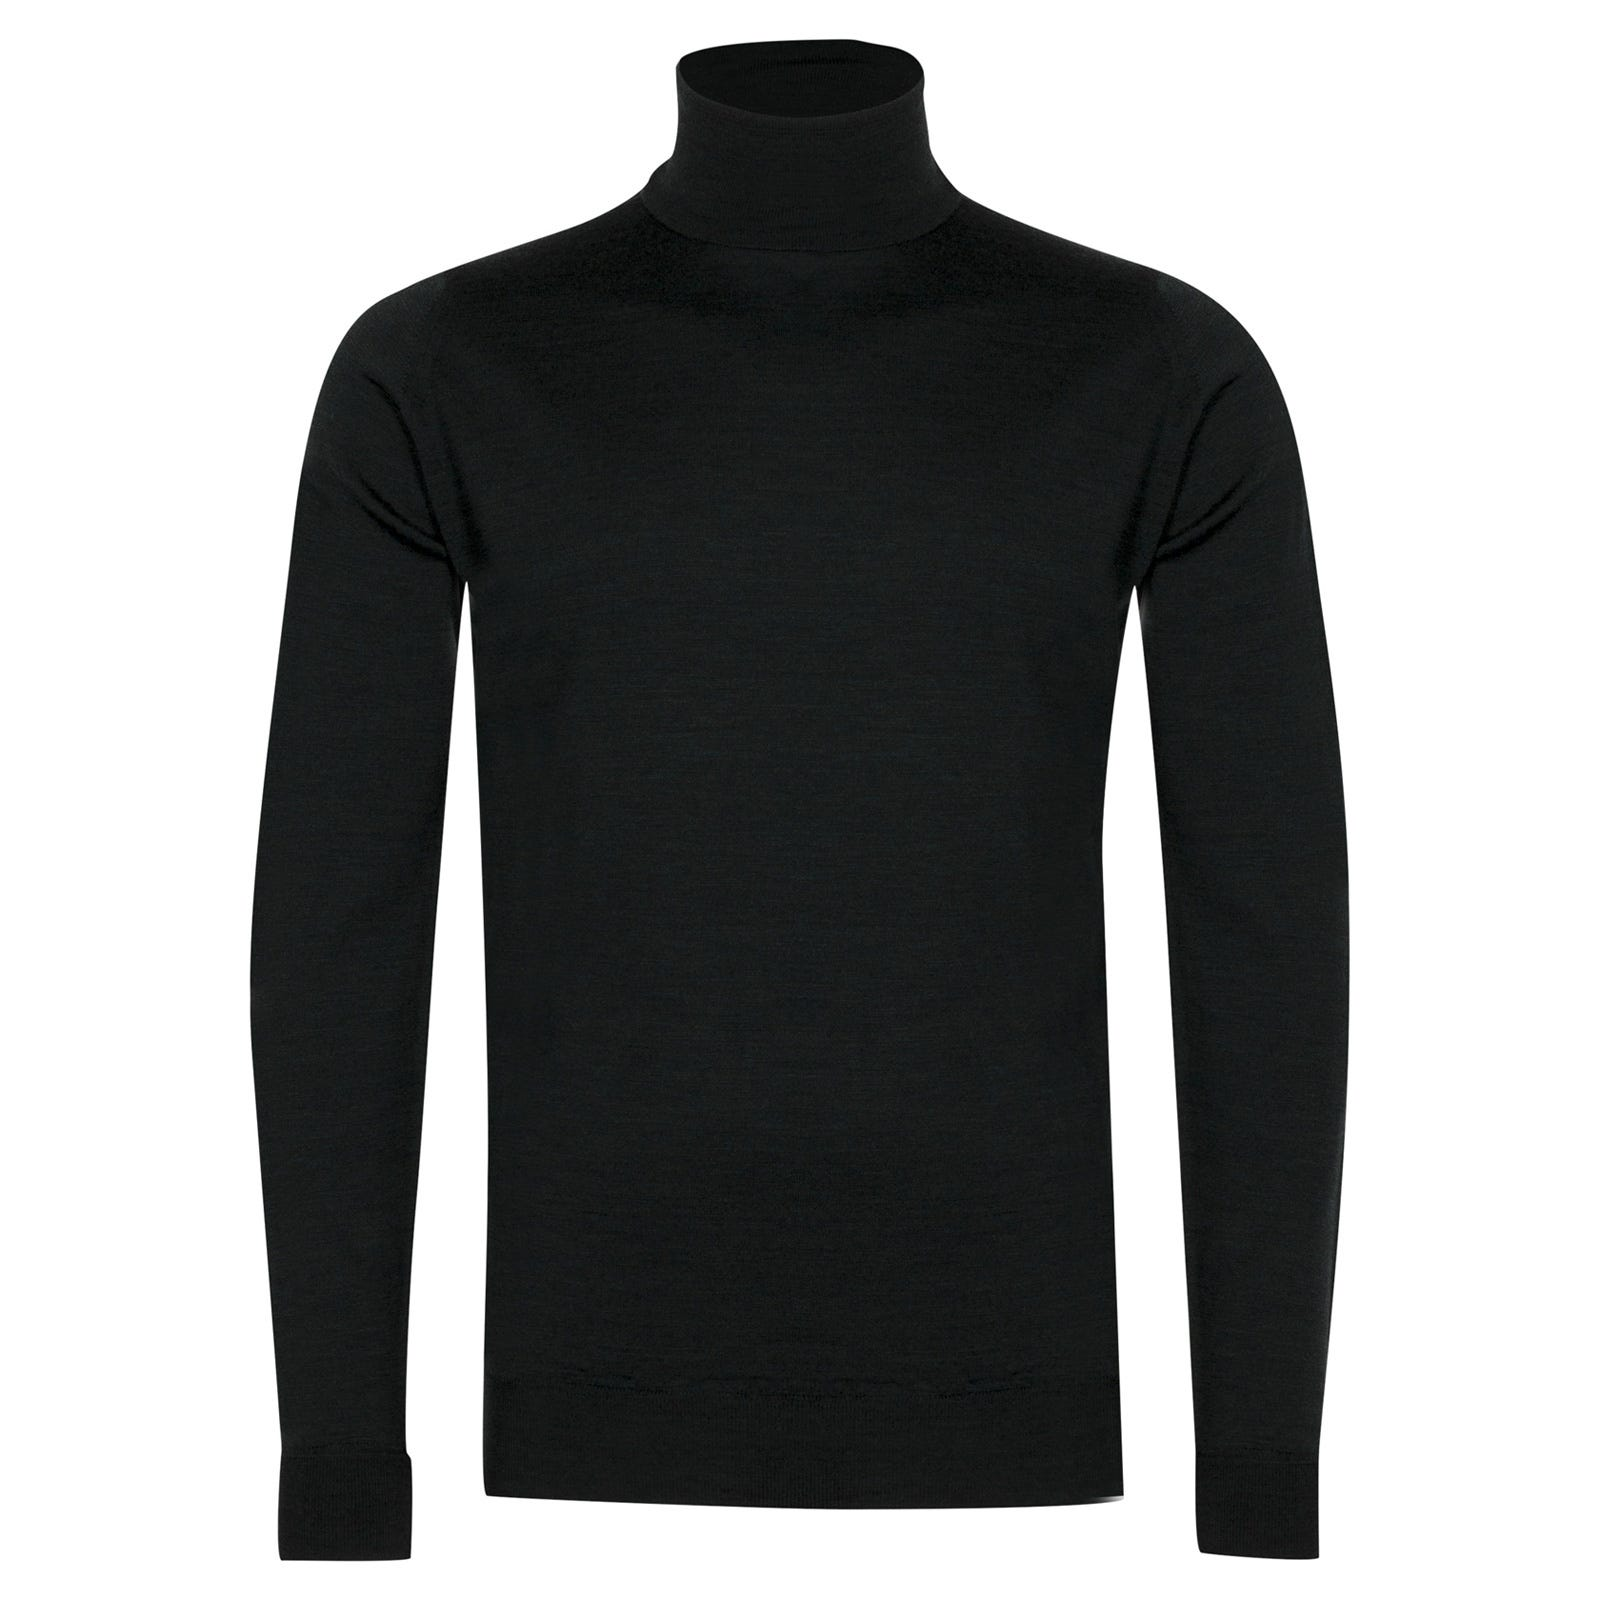 John Smedley richards Merino Wool Pullover in Racing Green-XXL